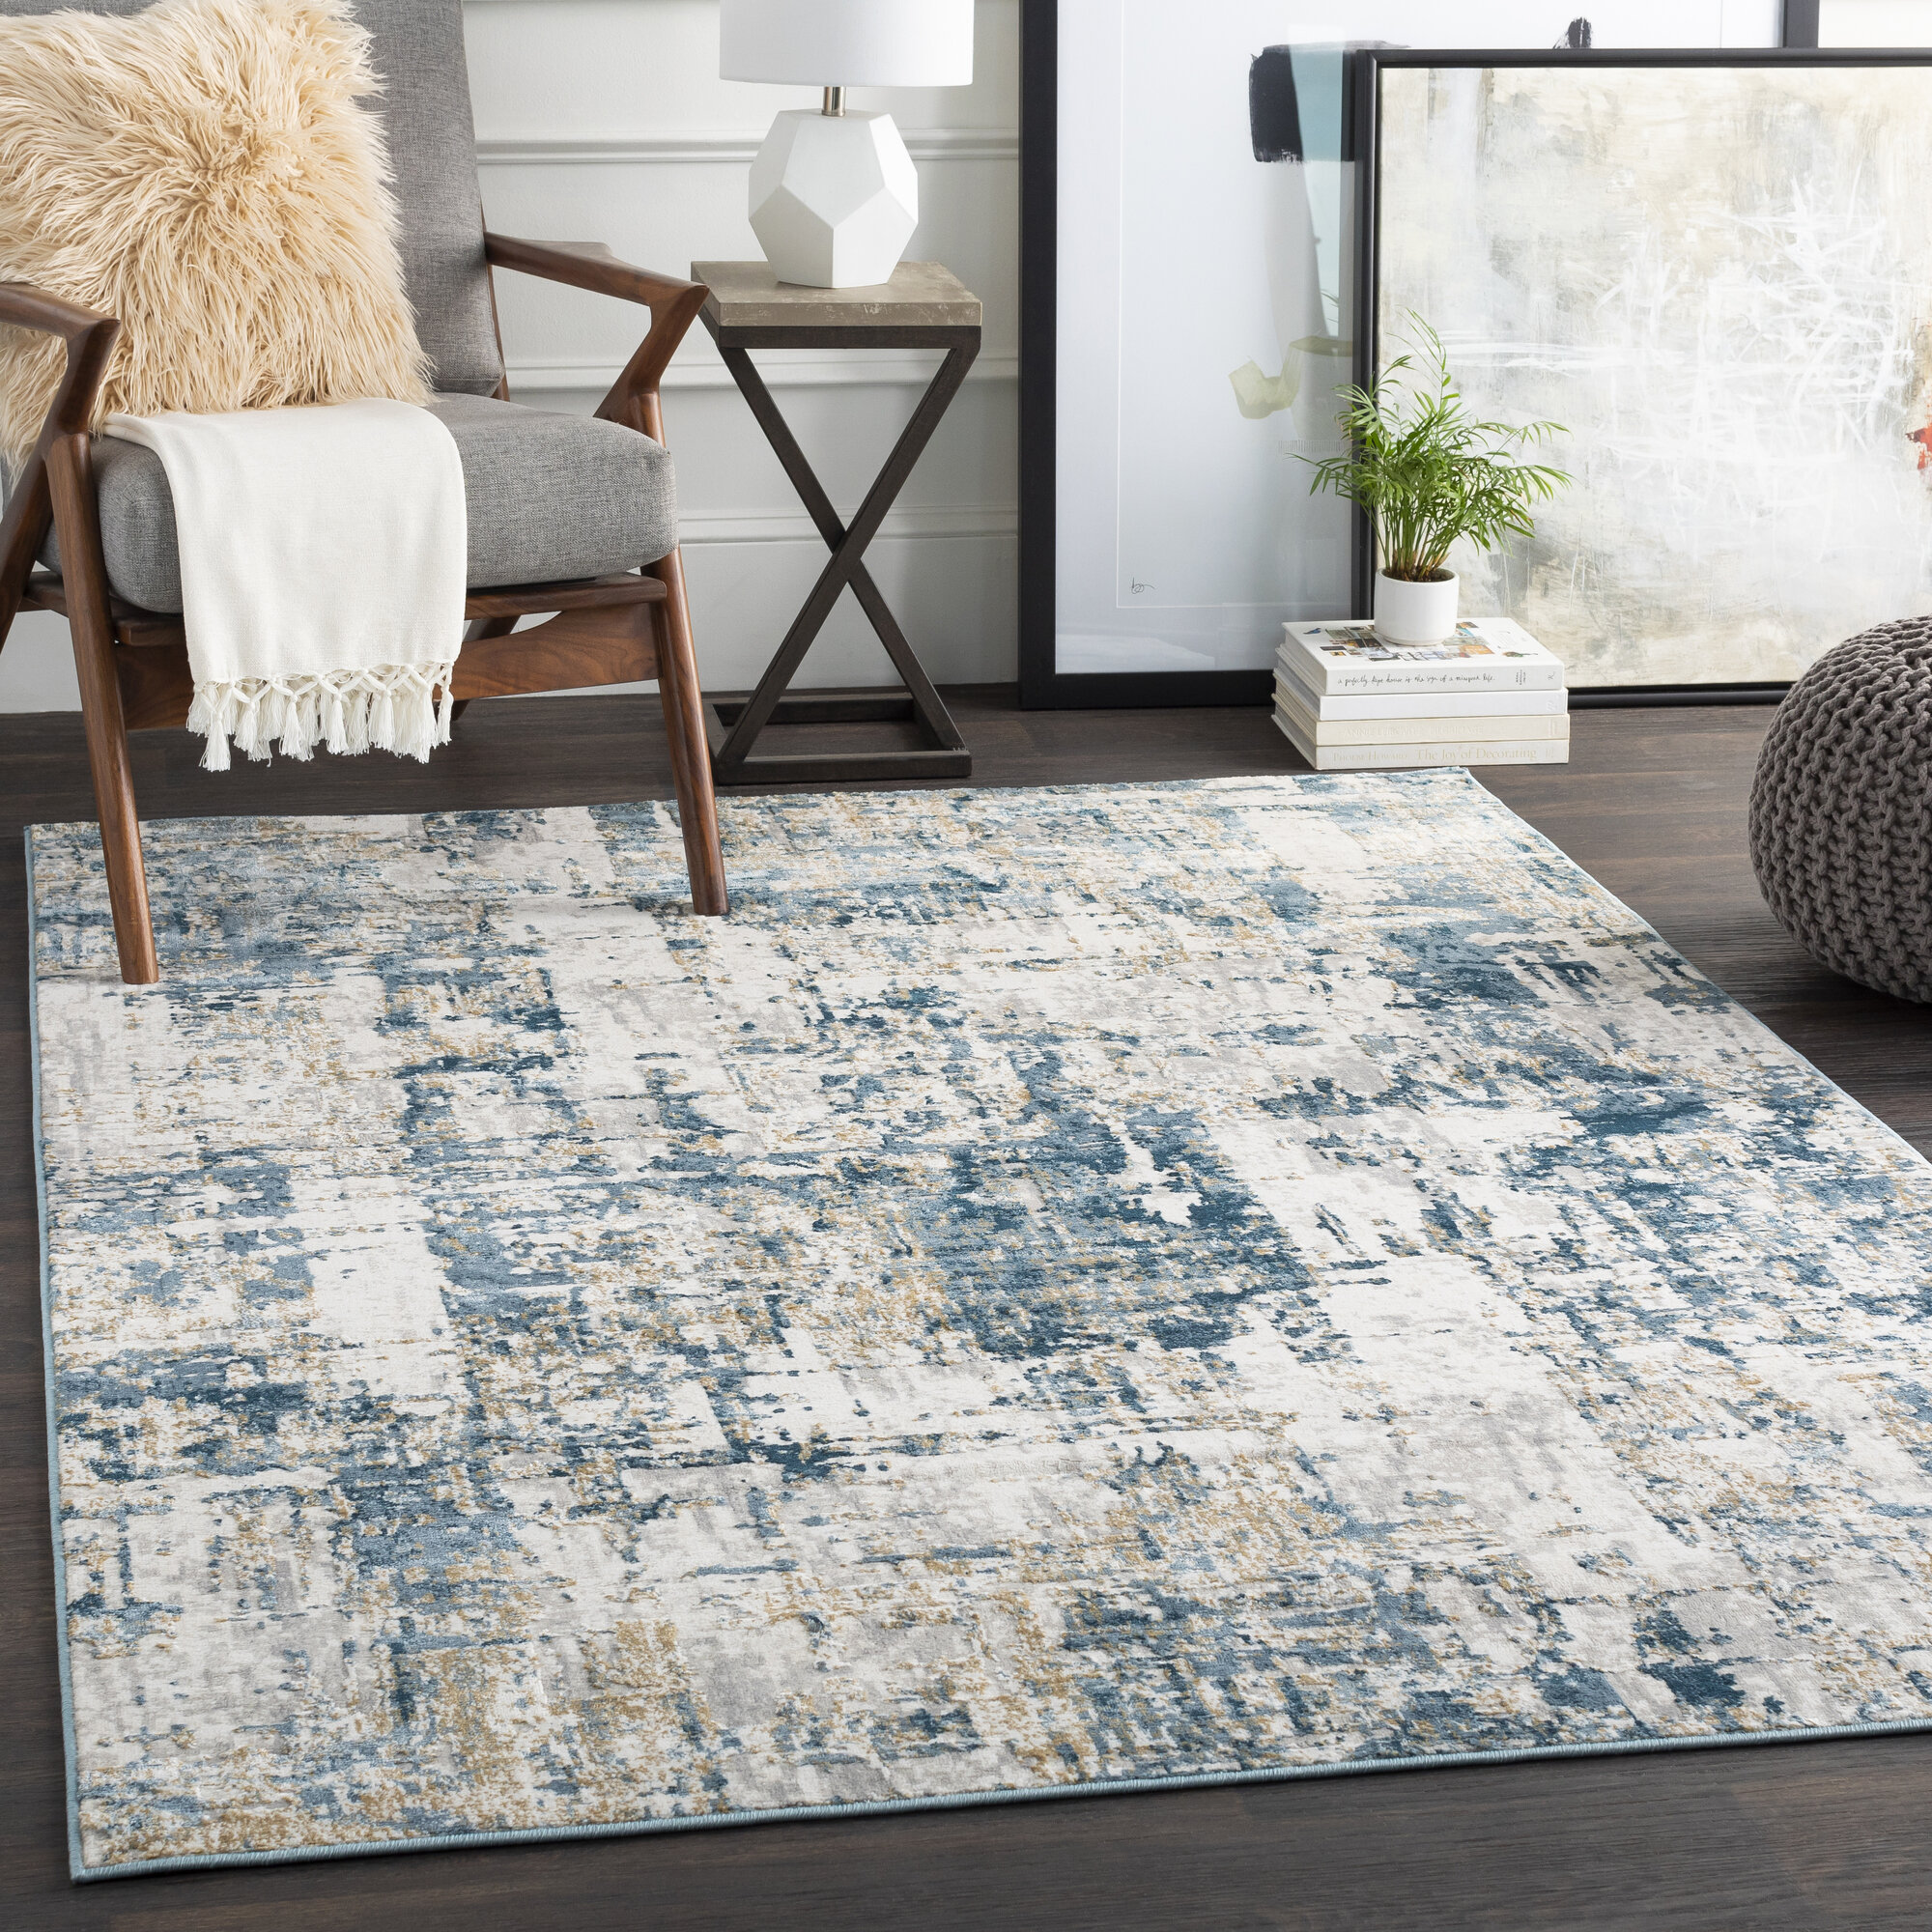 9 X 12 Area Rugs You Ll Love In 2021 Wayfair